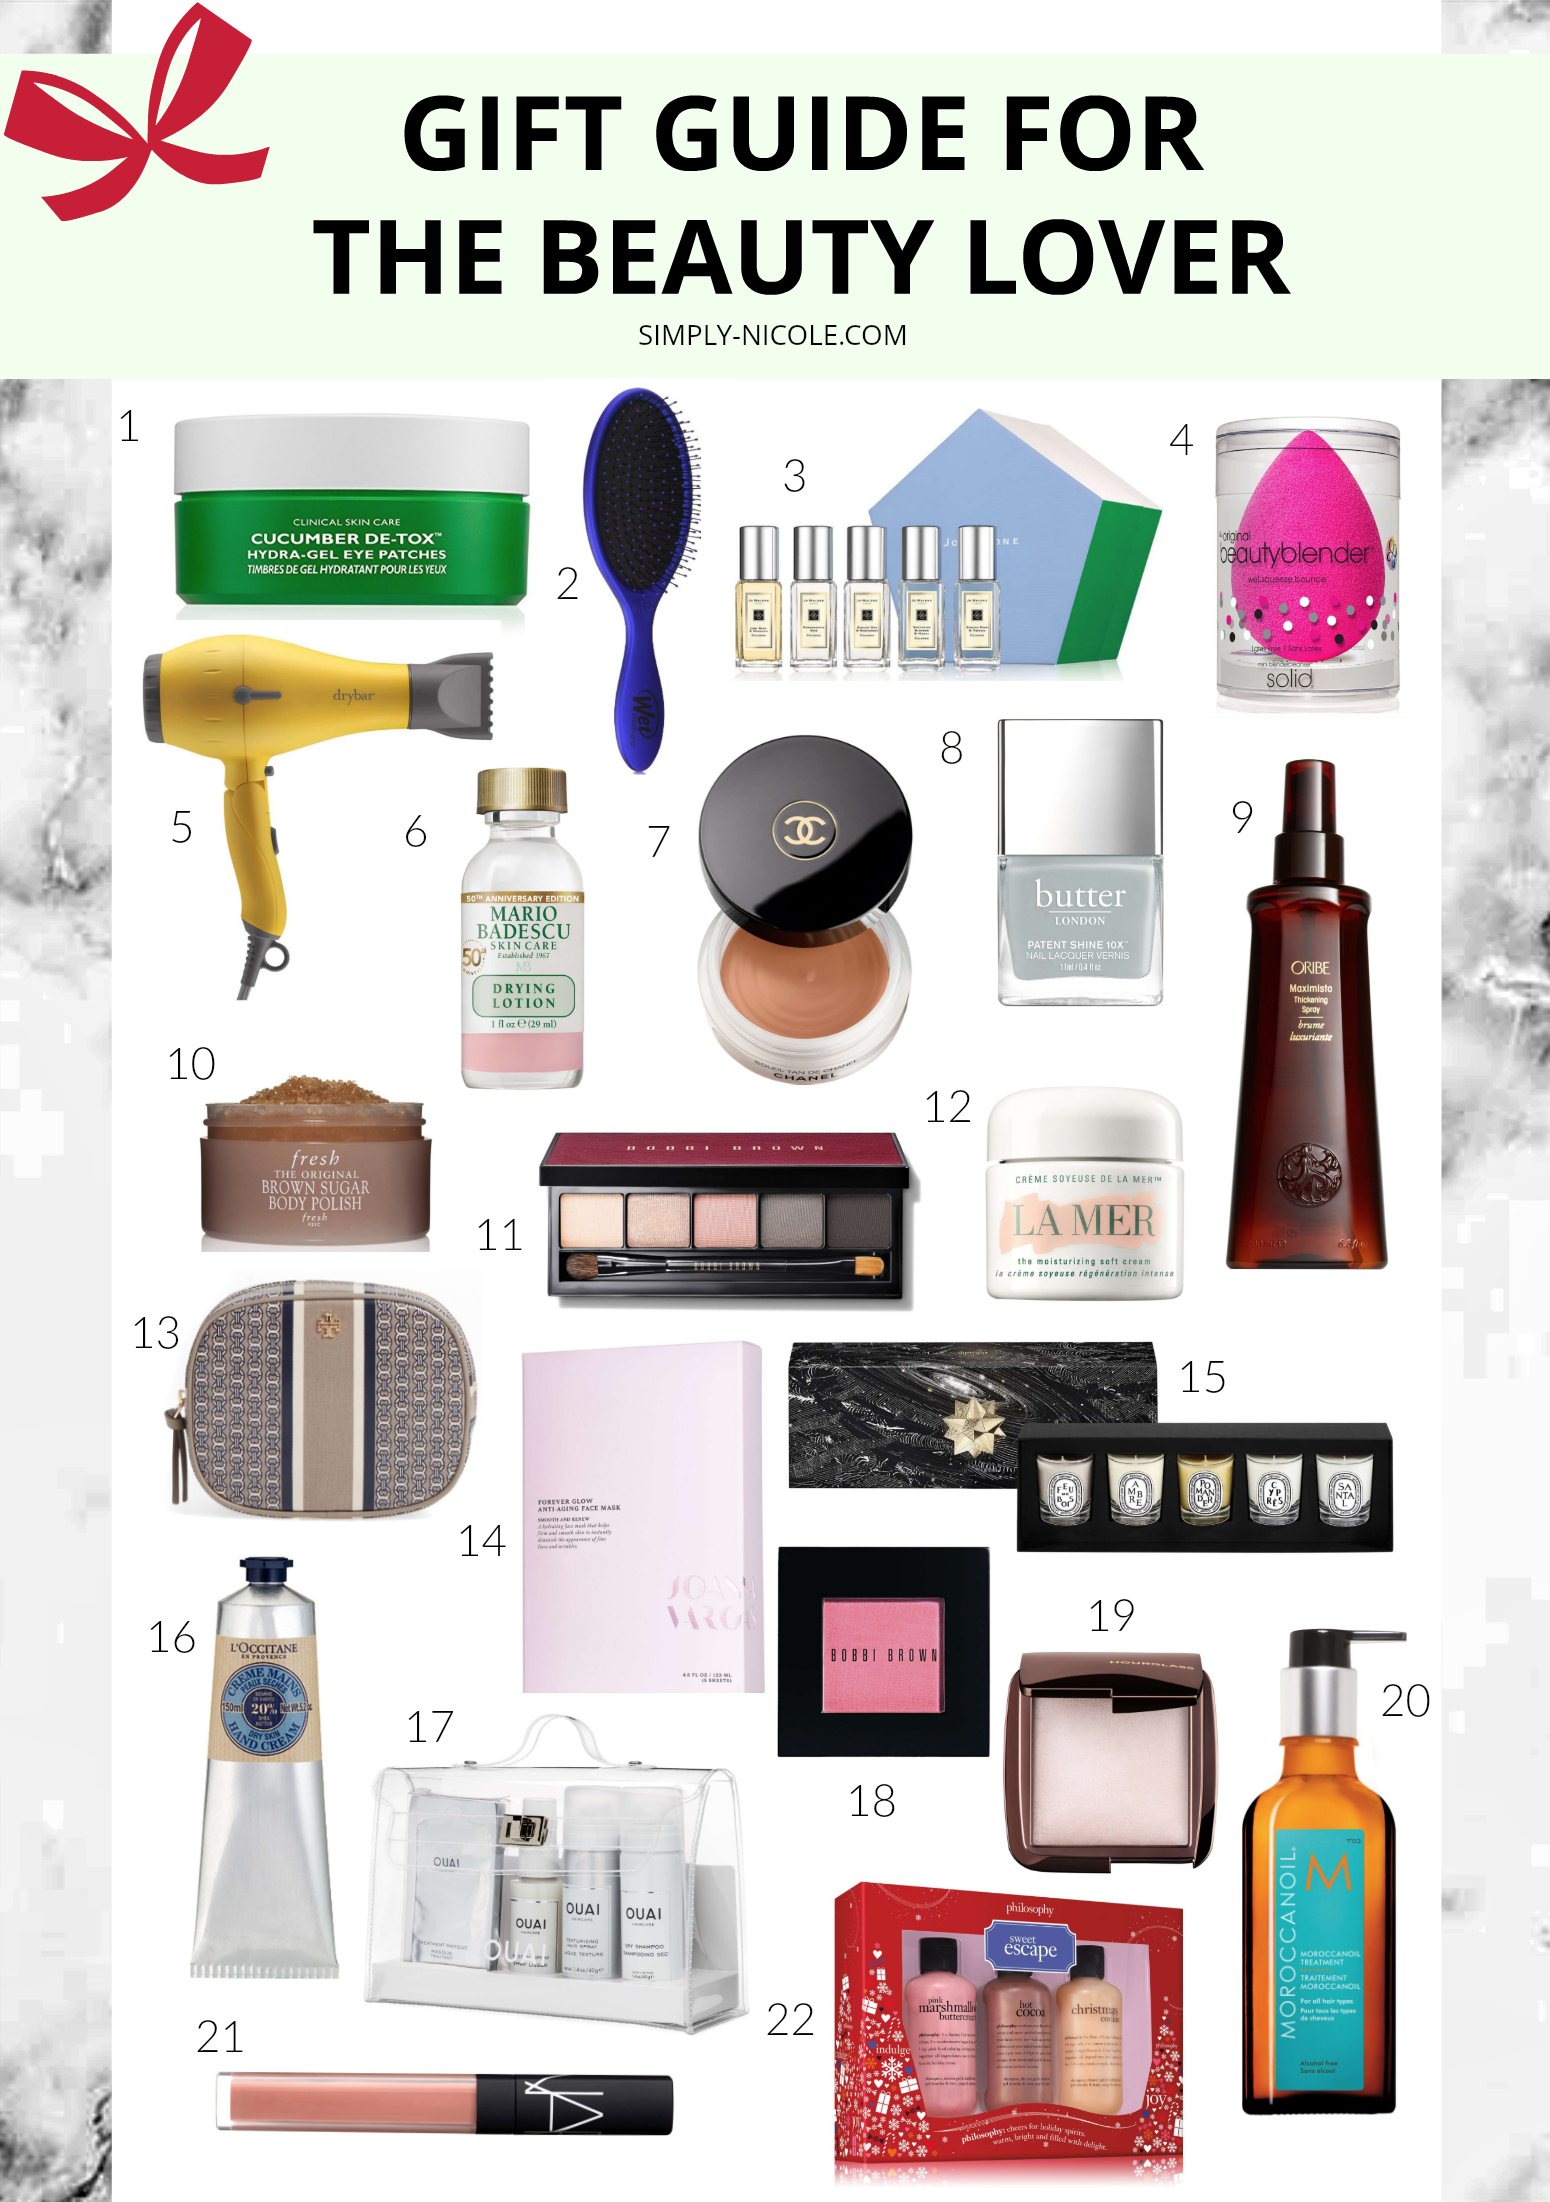 gift guide for the beauty lover via simply-nicole.com